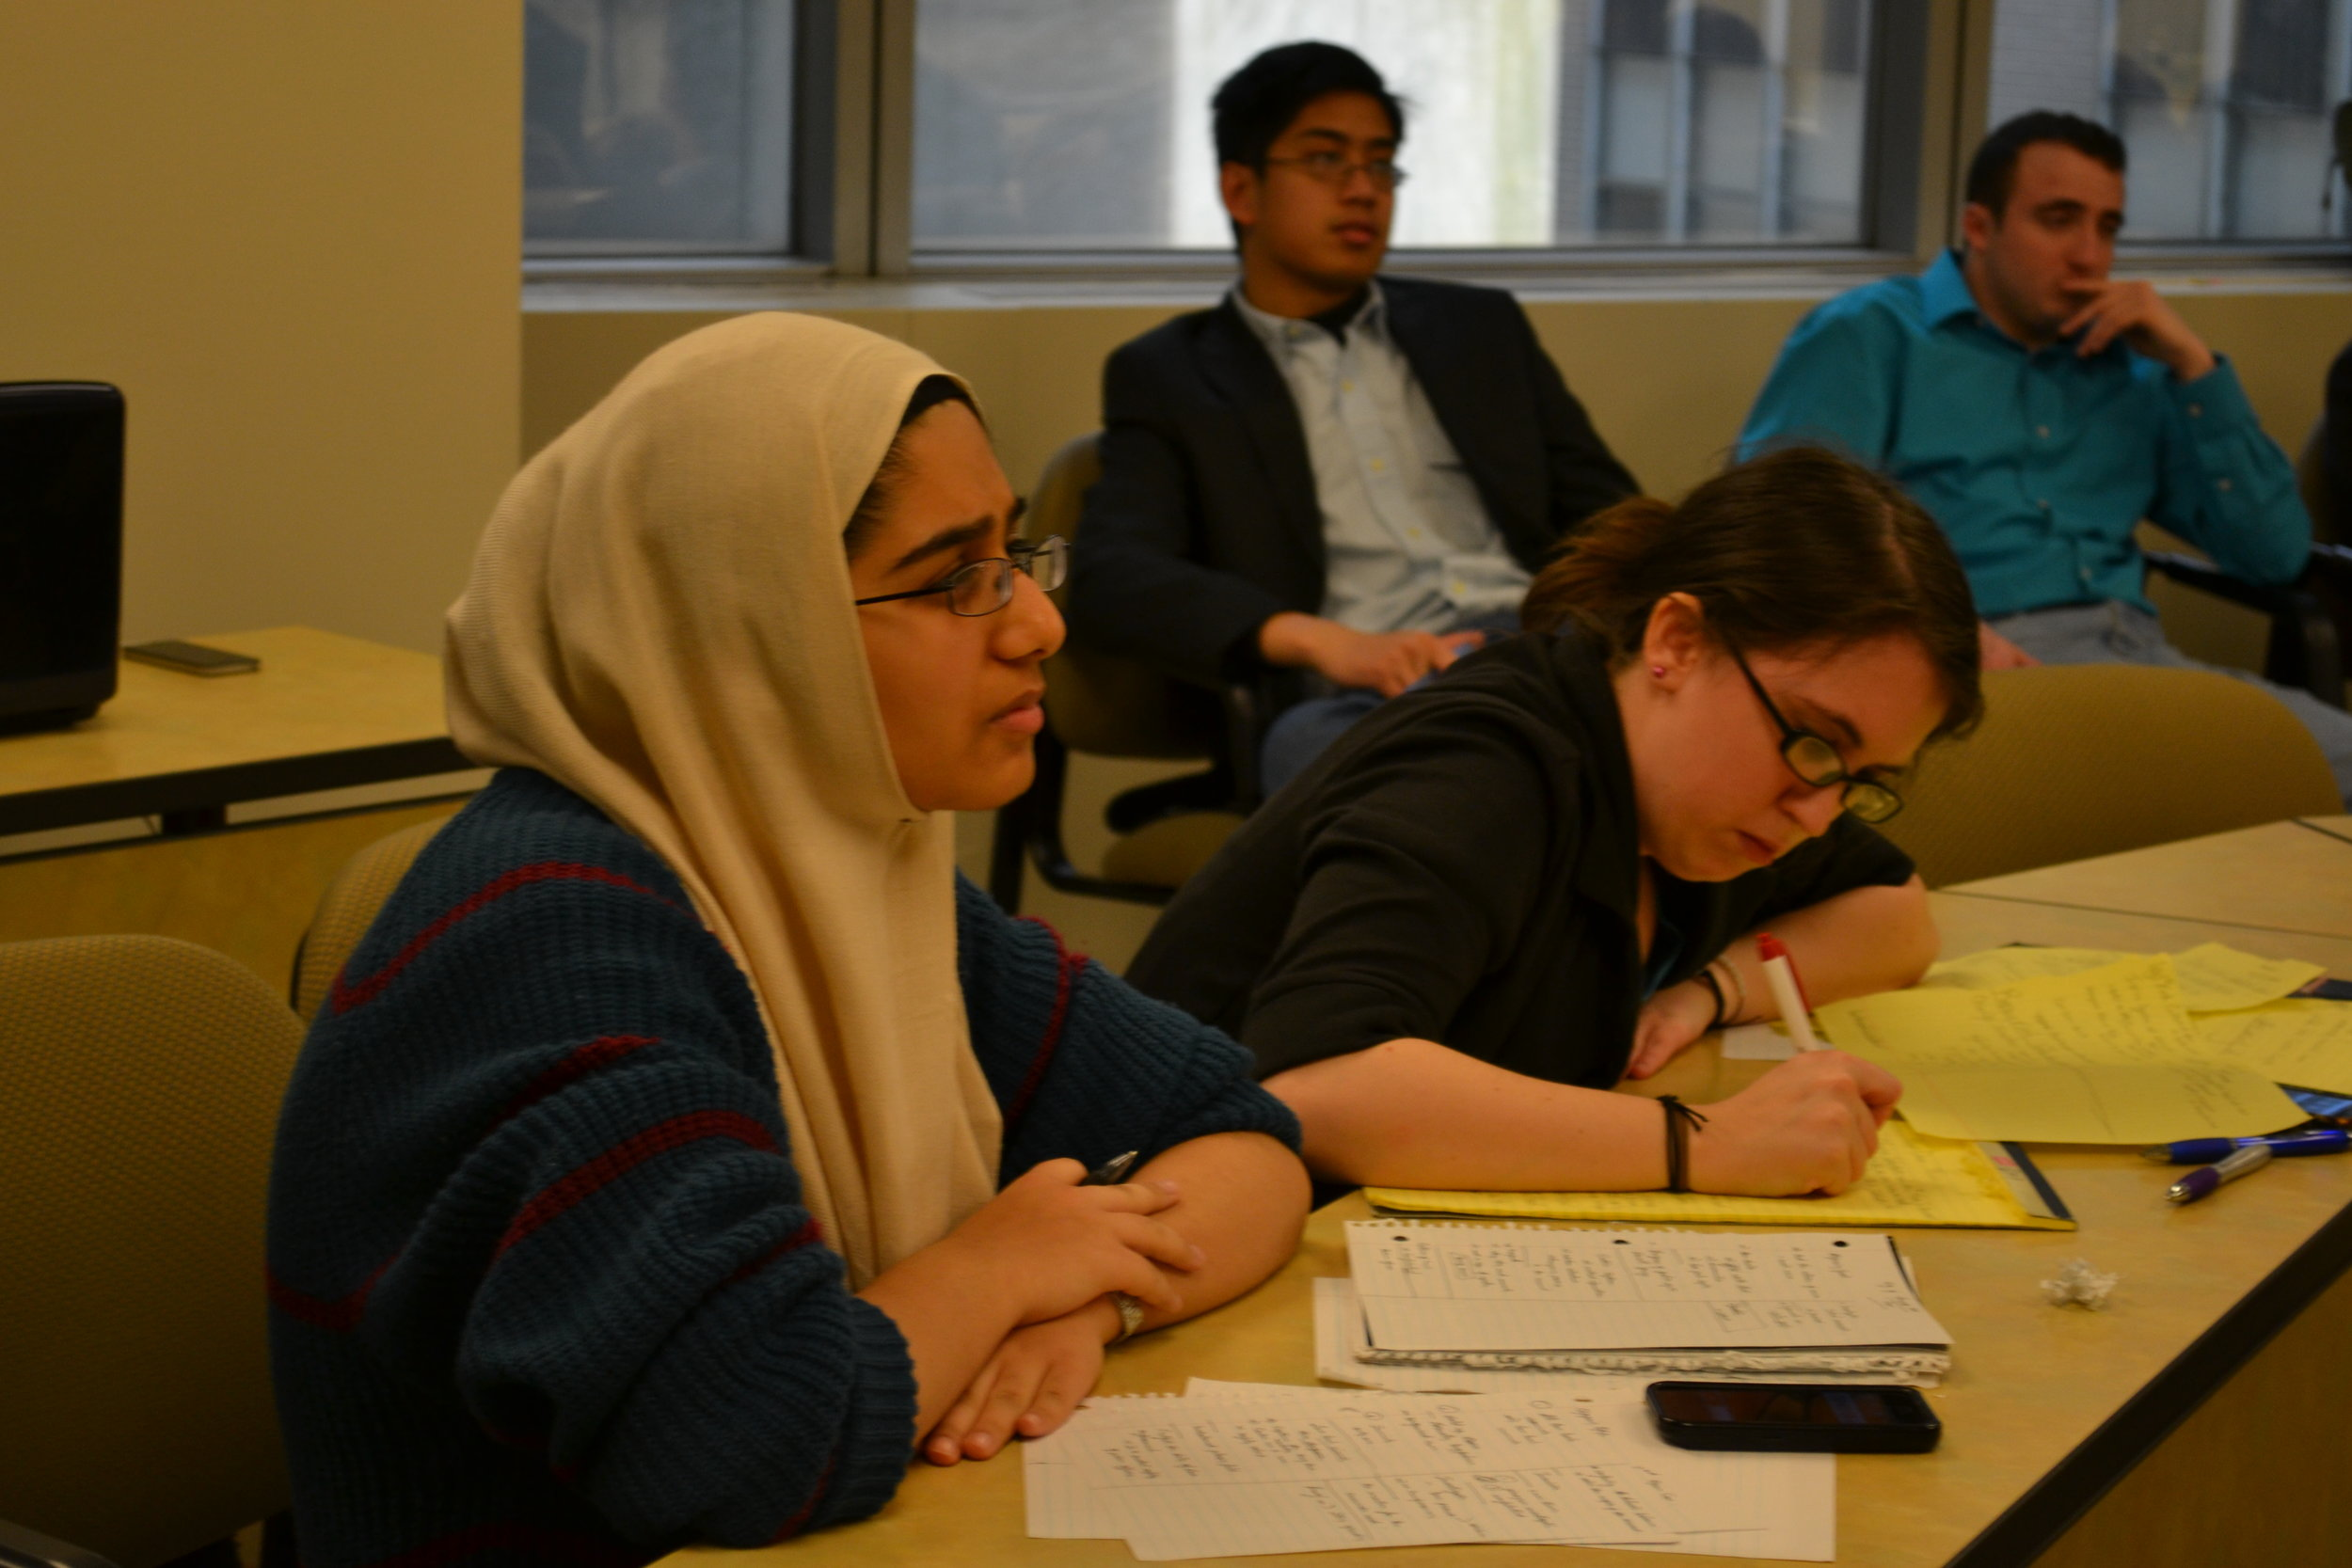 Colleen Fasone (right) and Ameena Rahman (left) from Adelphi University debate in the semi-final round. Photo courtesy of KDS.